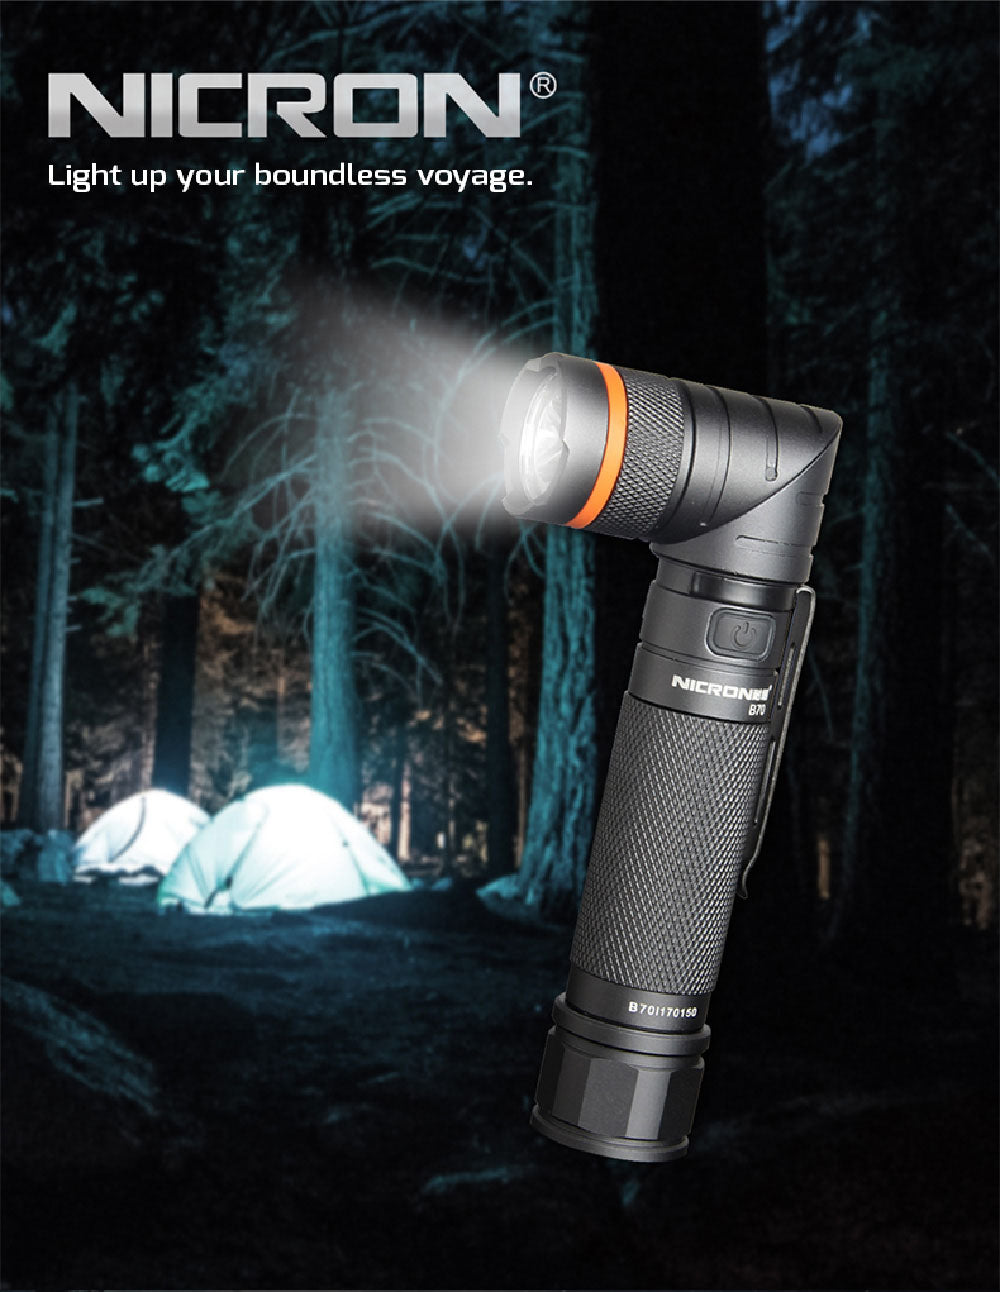 Nicron Flashlight B70 High Brightness Magnetic Twist Led Flashlight with 9 Modes